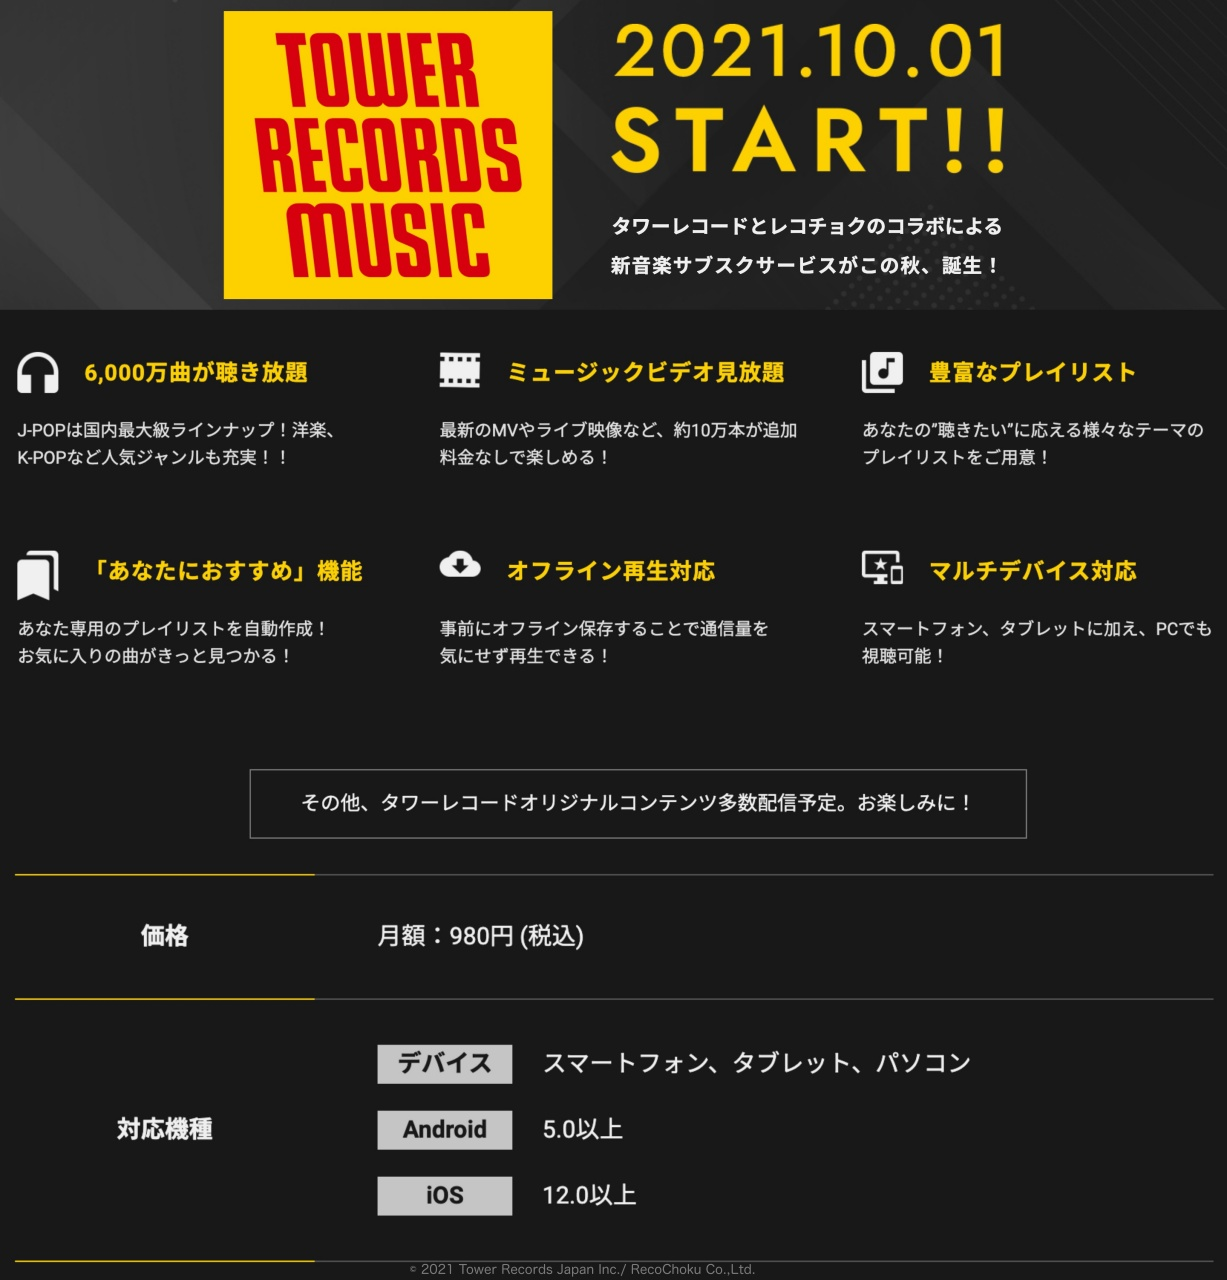 tower records music powered by recochoku